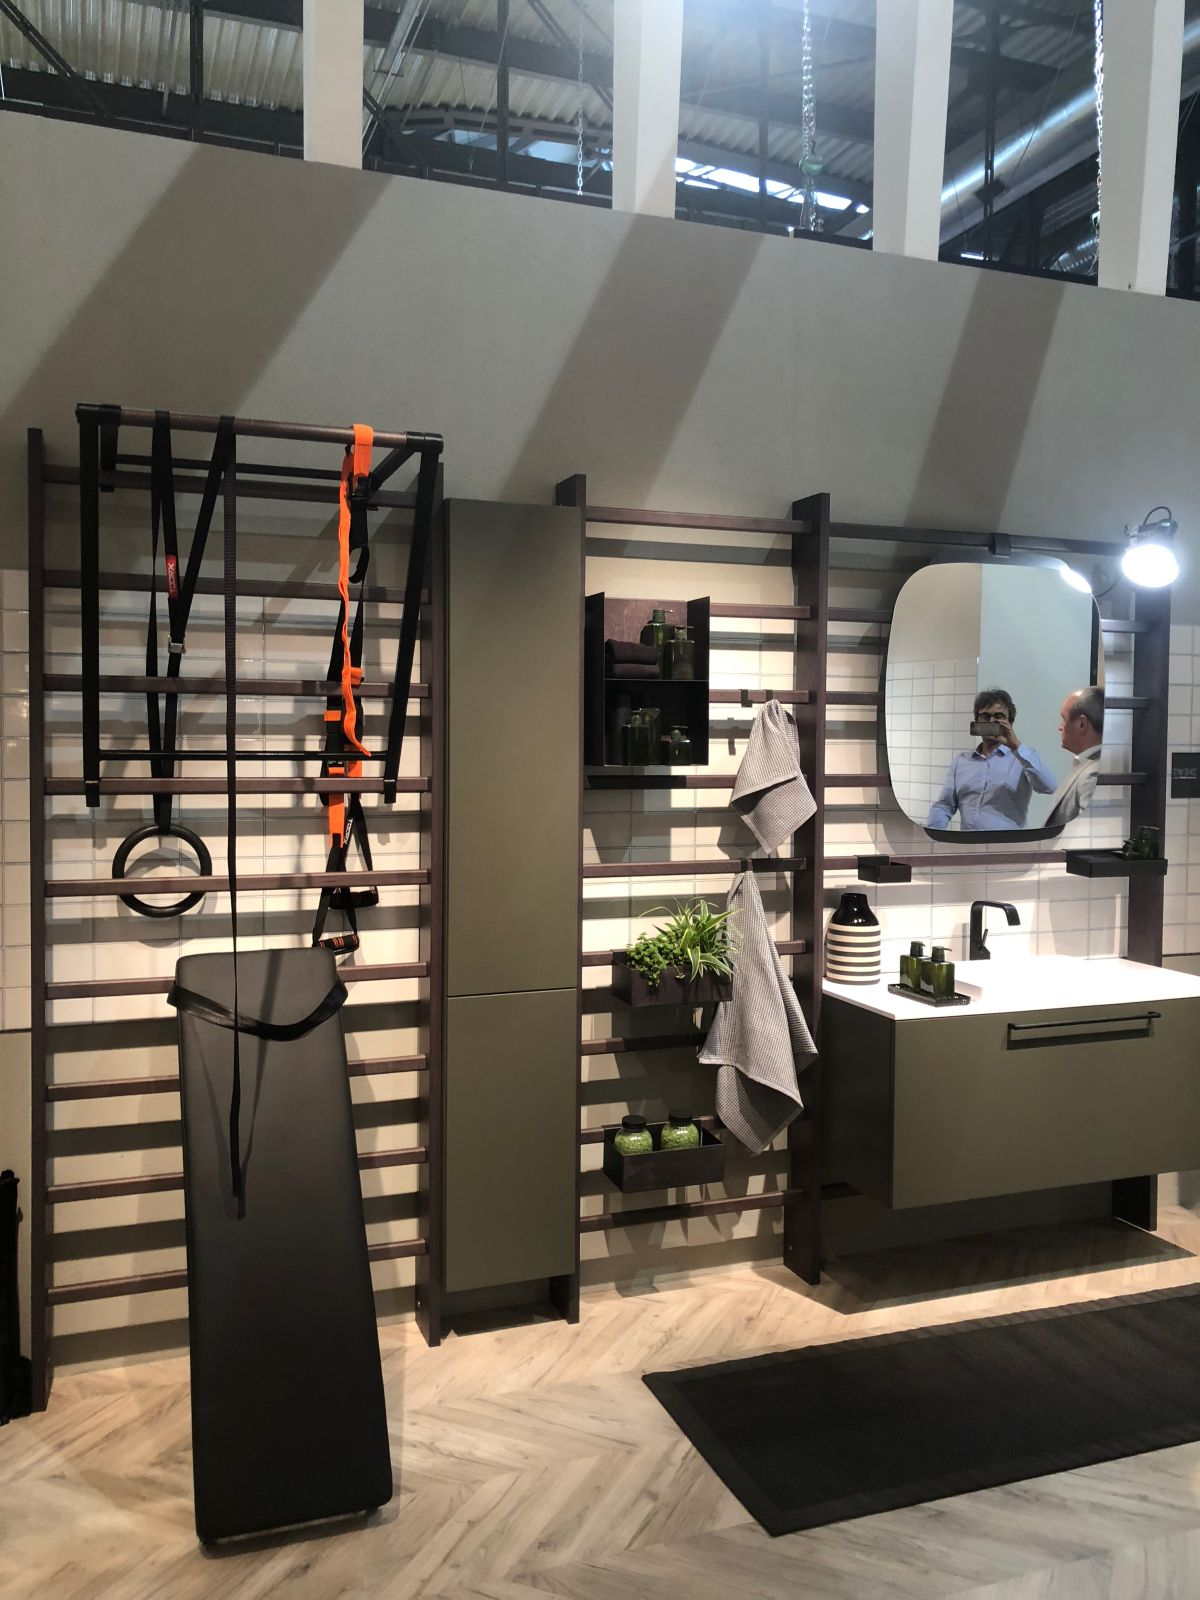 A new gym bathroom from scavolini inspires people to become more